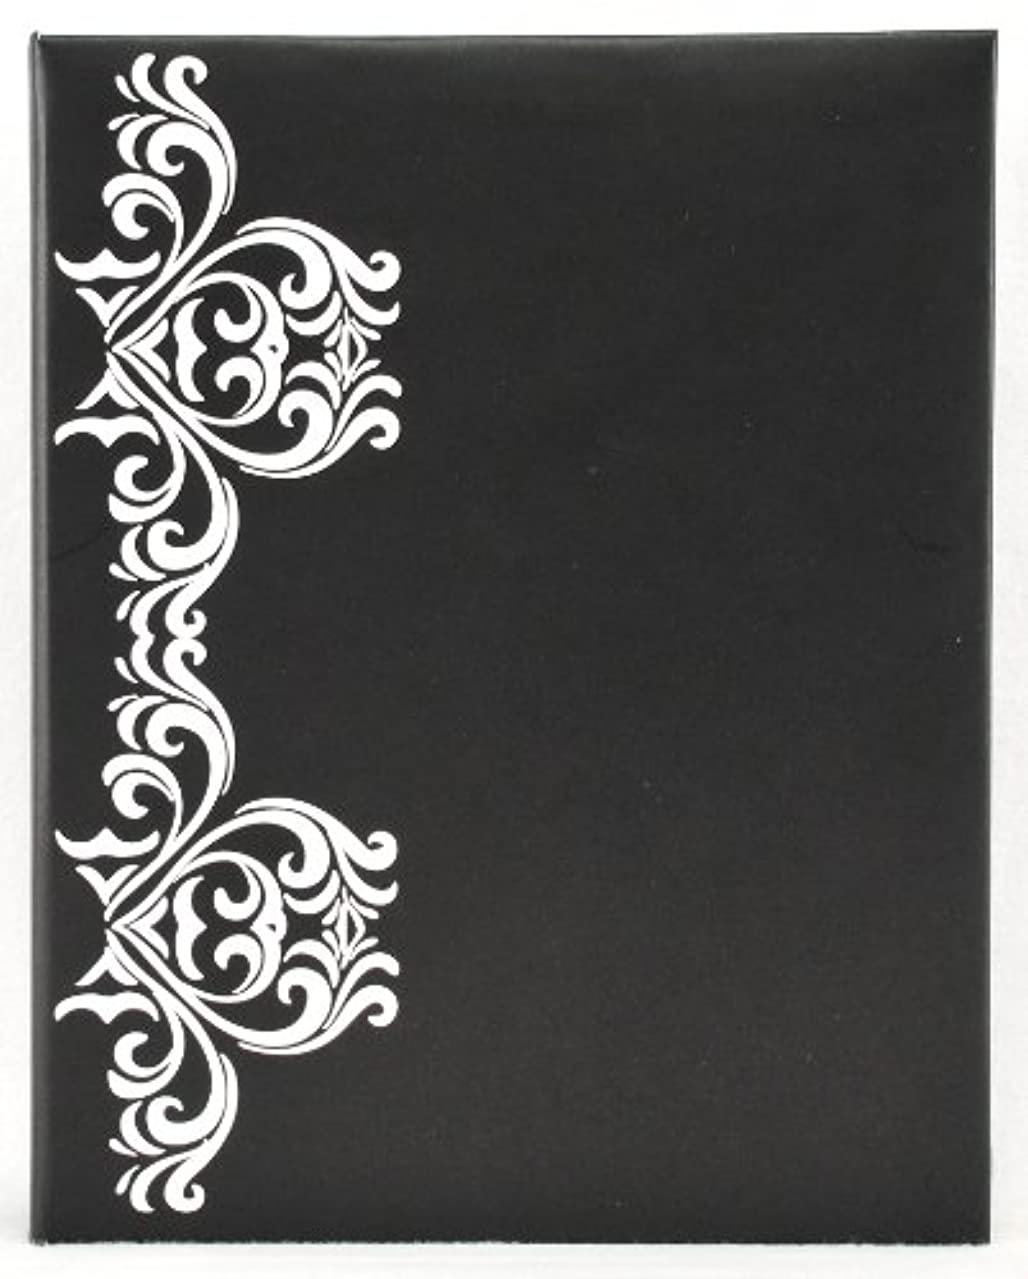 Pinnacle Frame Embellished Photo Album, Black and White